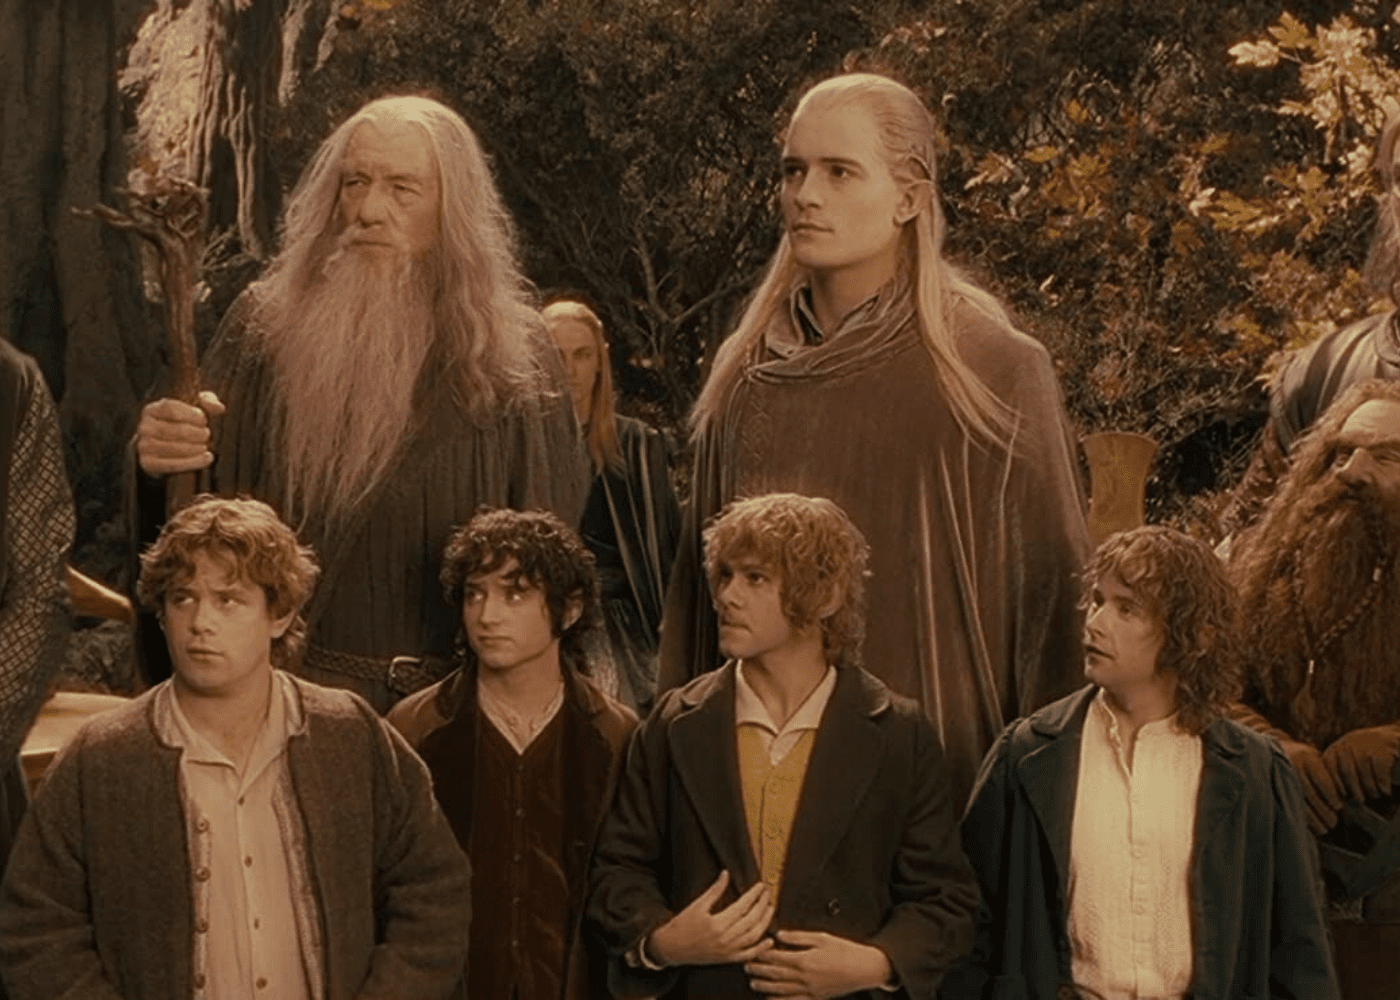 Lord of the Rings | movie marathons with the kids